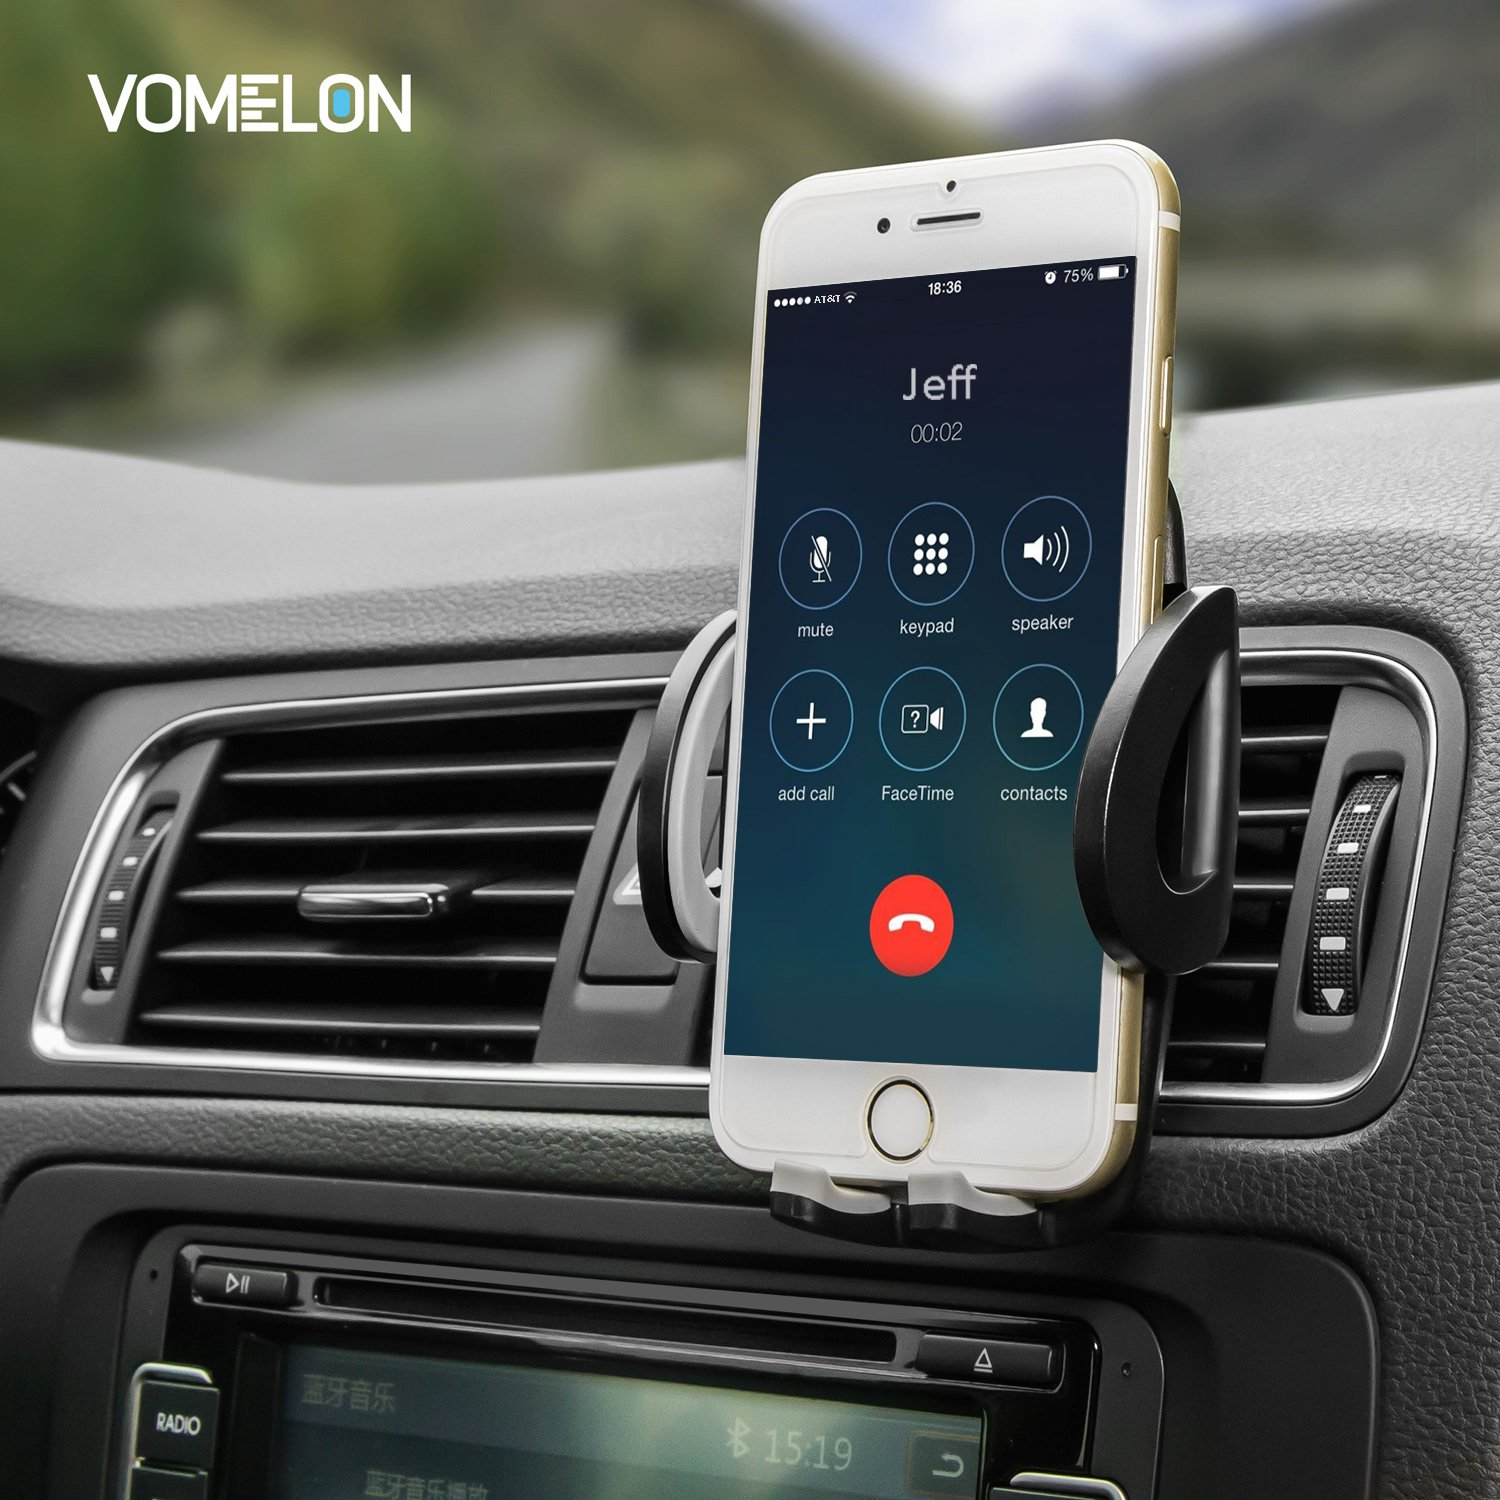 LG Huawei and More Sumsung Cell Phone Holder for Car Google 3-in-1 Car Phone Holder Car Mount for iPhone X iPhone 8 8 Plus 7 7 Plus